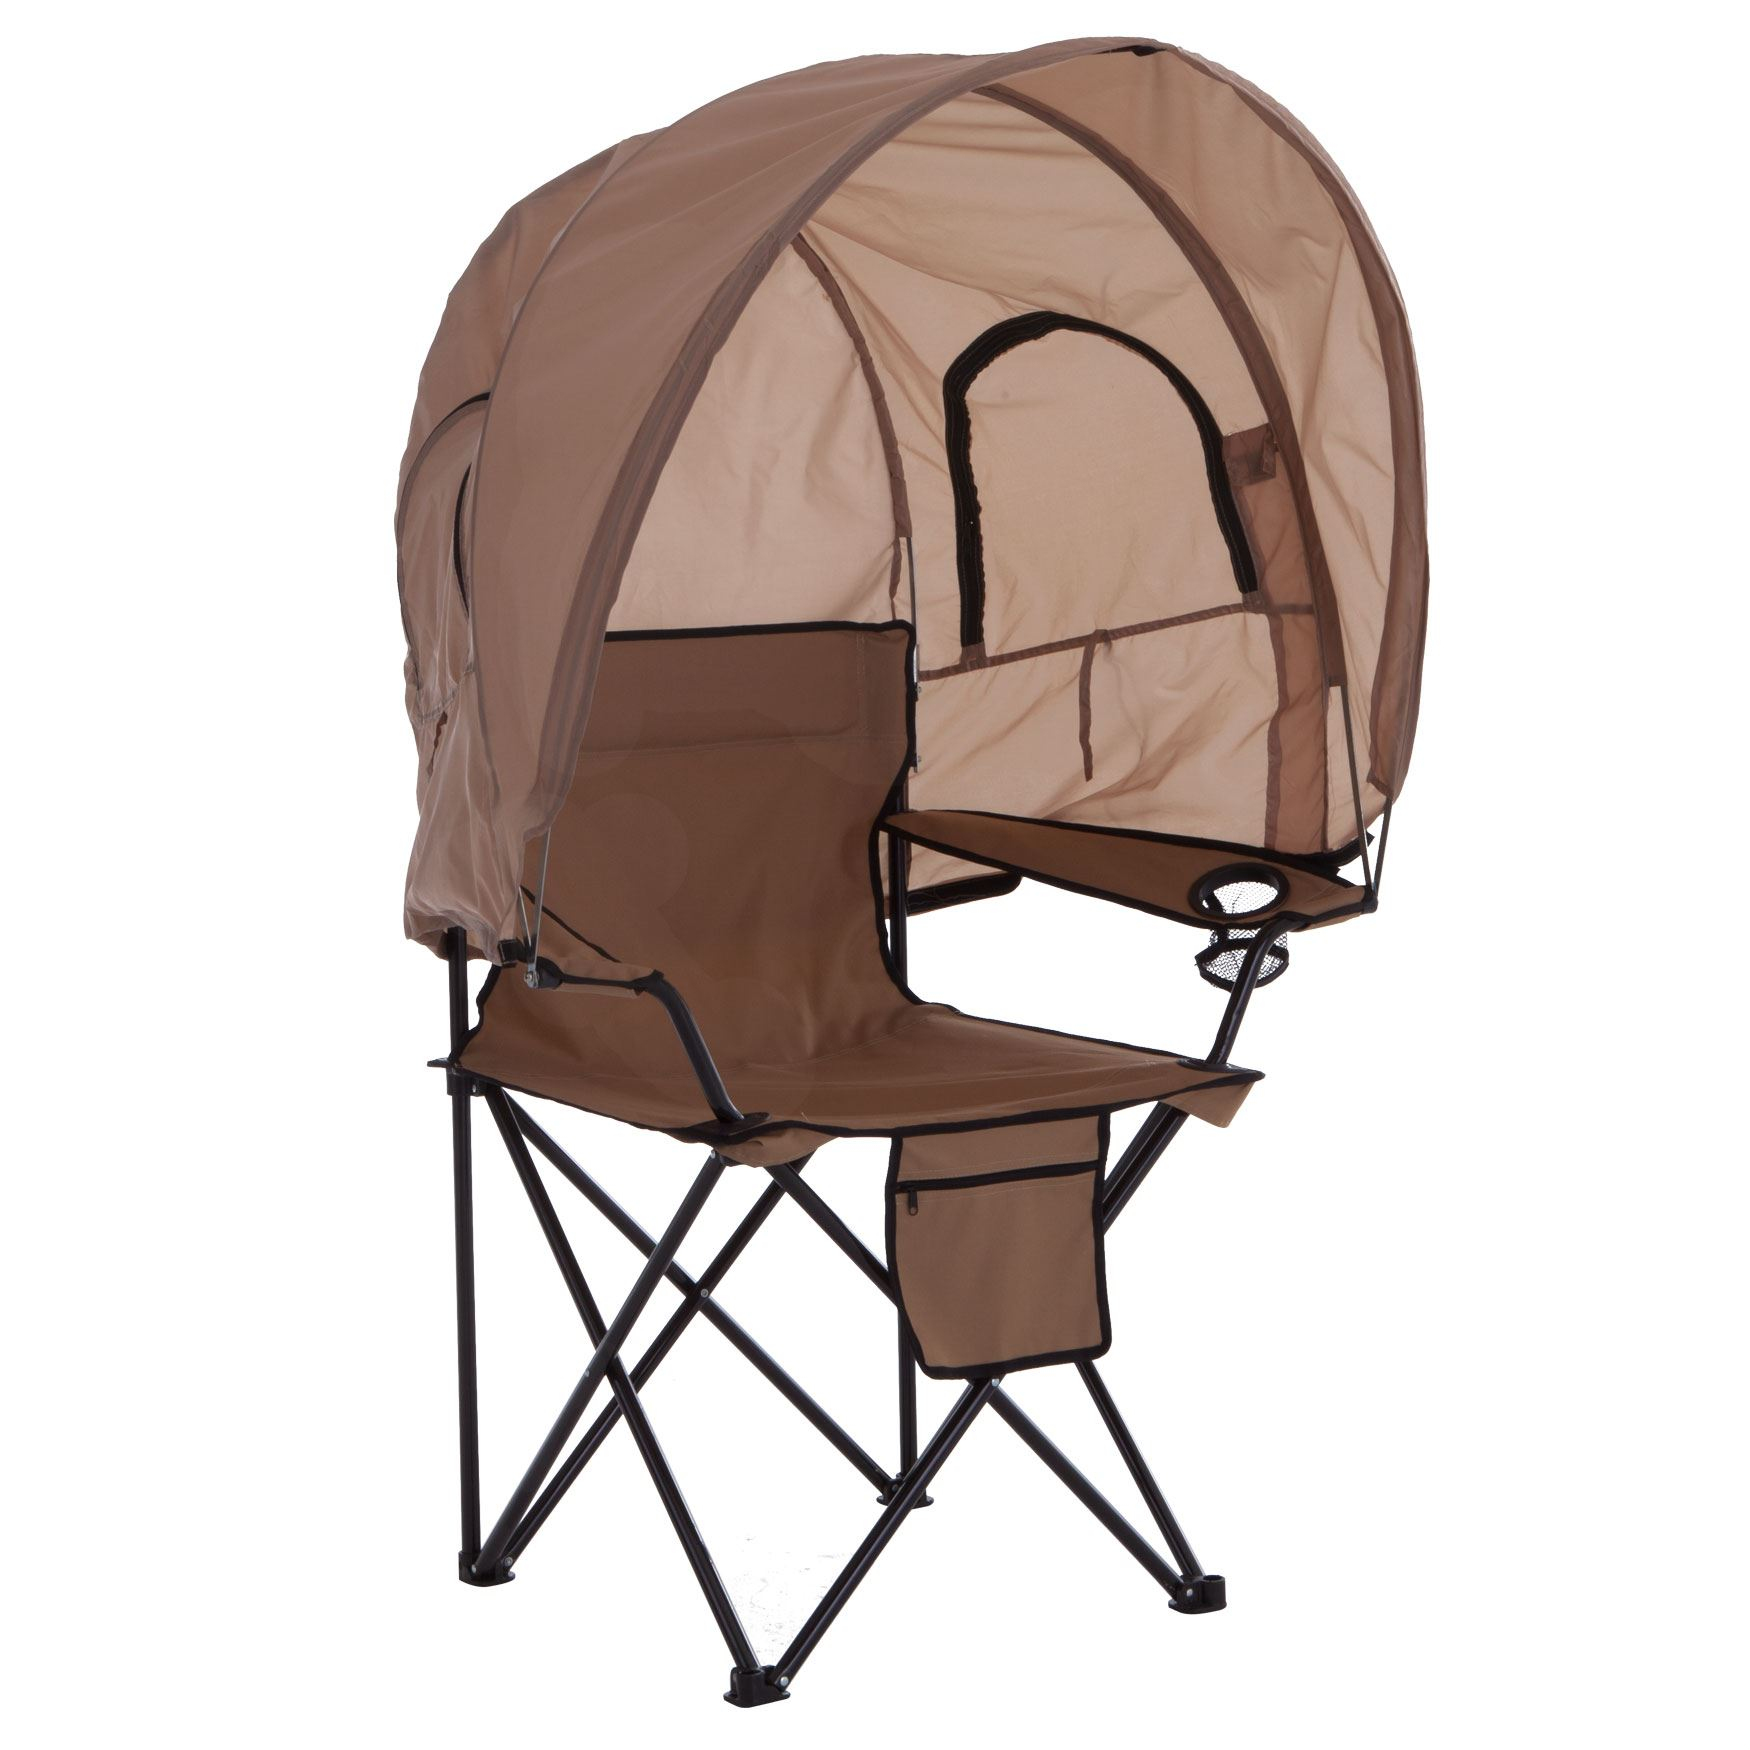 Camping Chairs With Canopy Camp Chair With Canopy Plus Size Outdoor Chairs